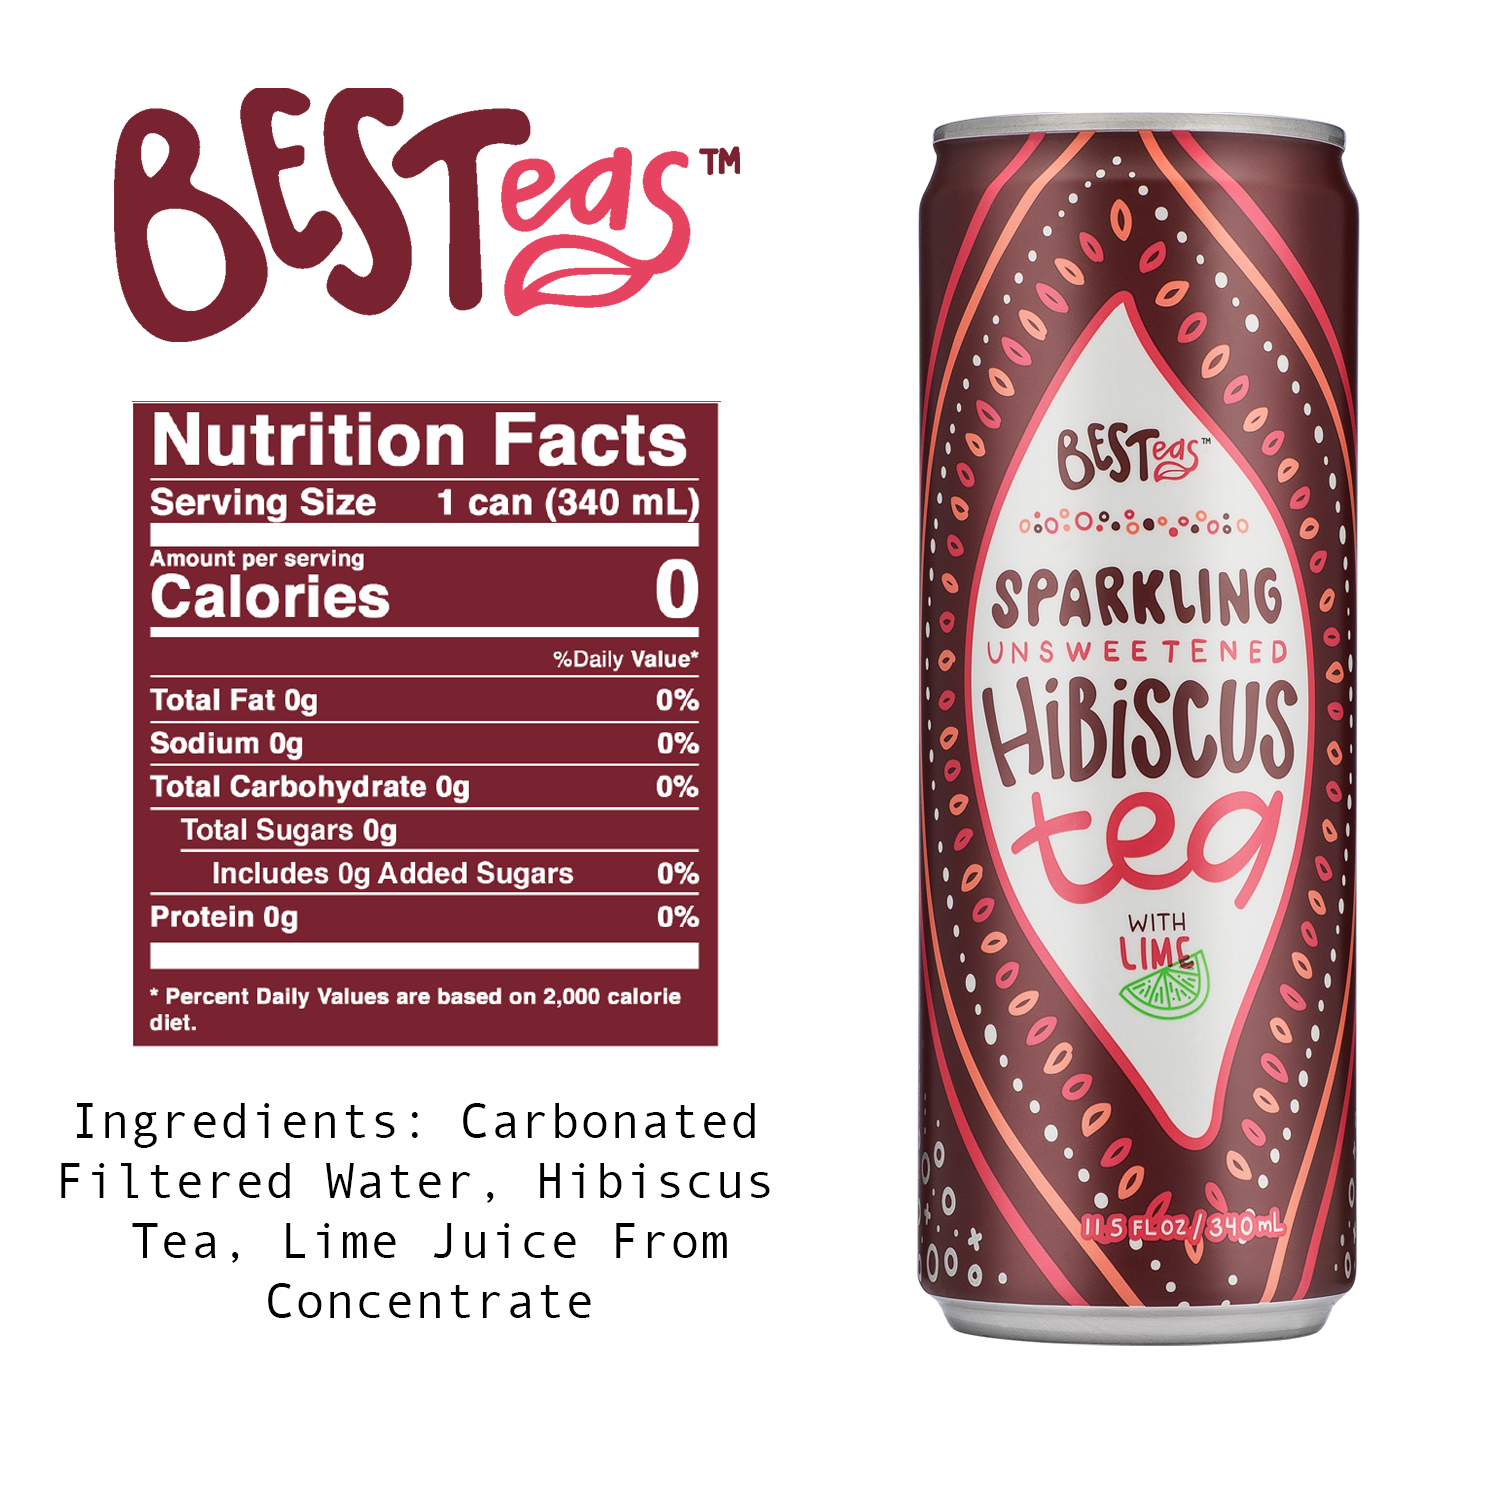 BESTeas Sparkling Unsweetened Hibiscus Tea + Lime Case (12 x 11.5 fl oz cans)